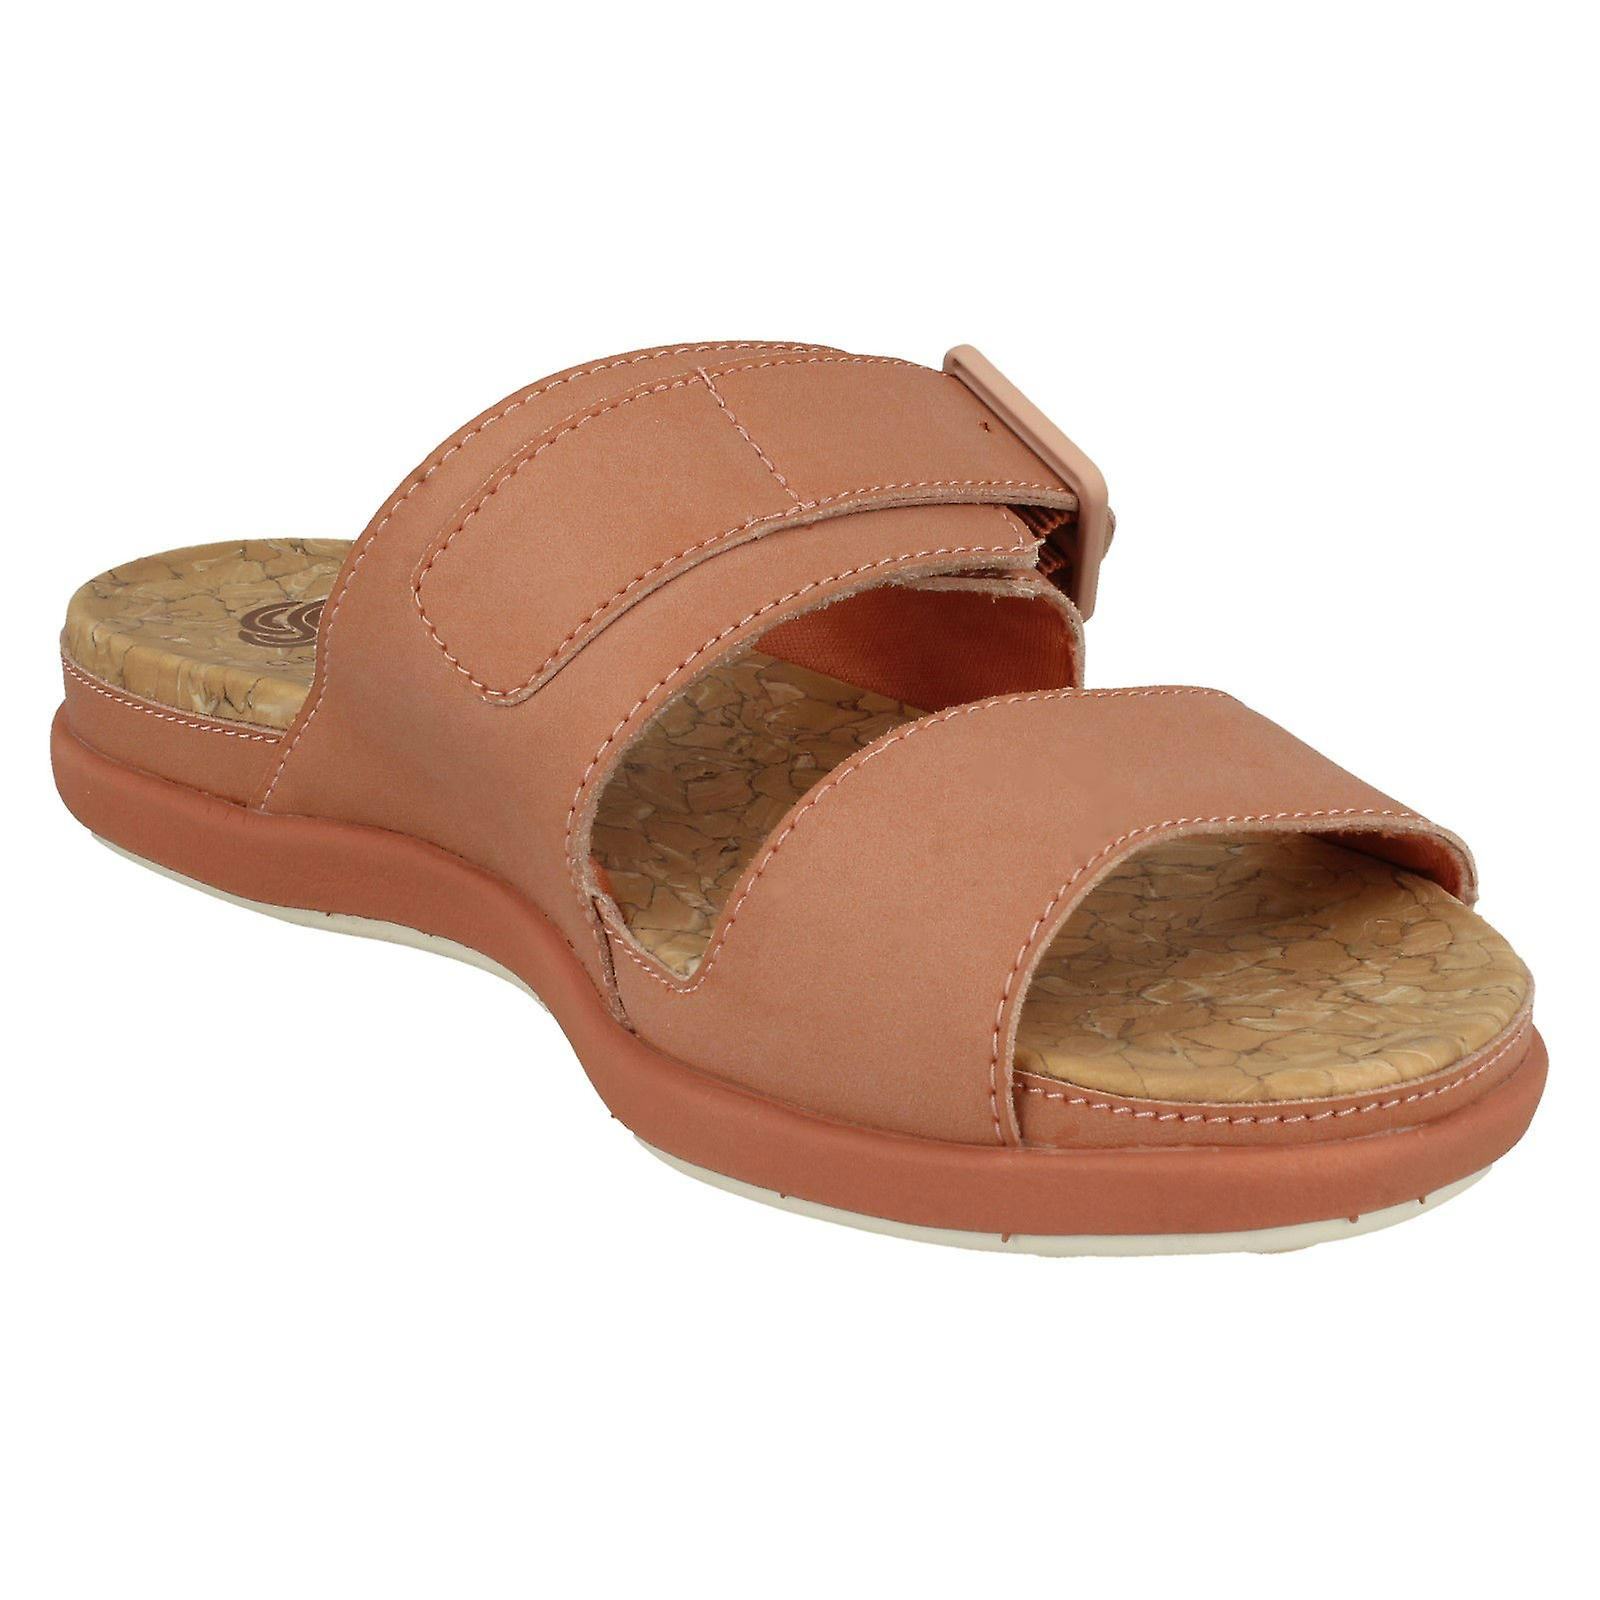 Ladies Clarks Cloudsteppers Mule Sandals Step June Tide